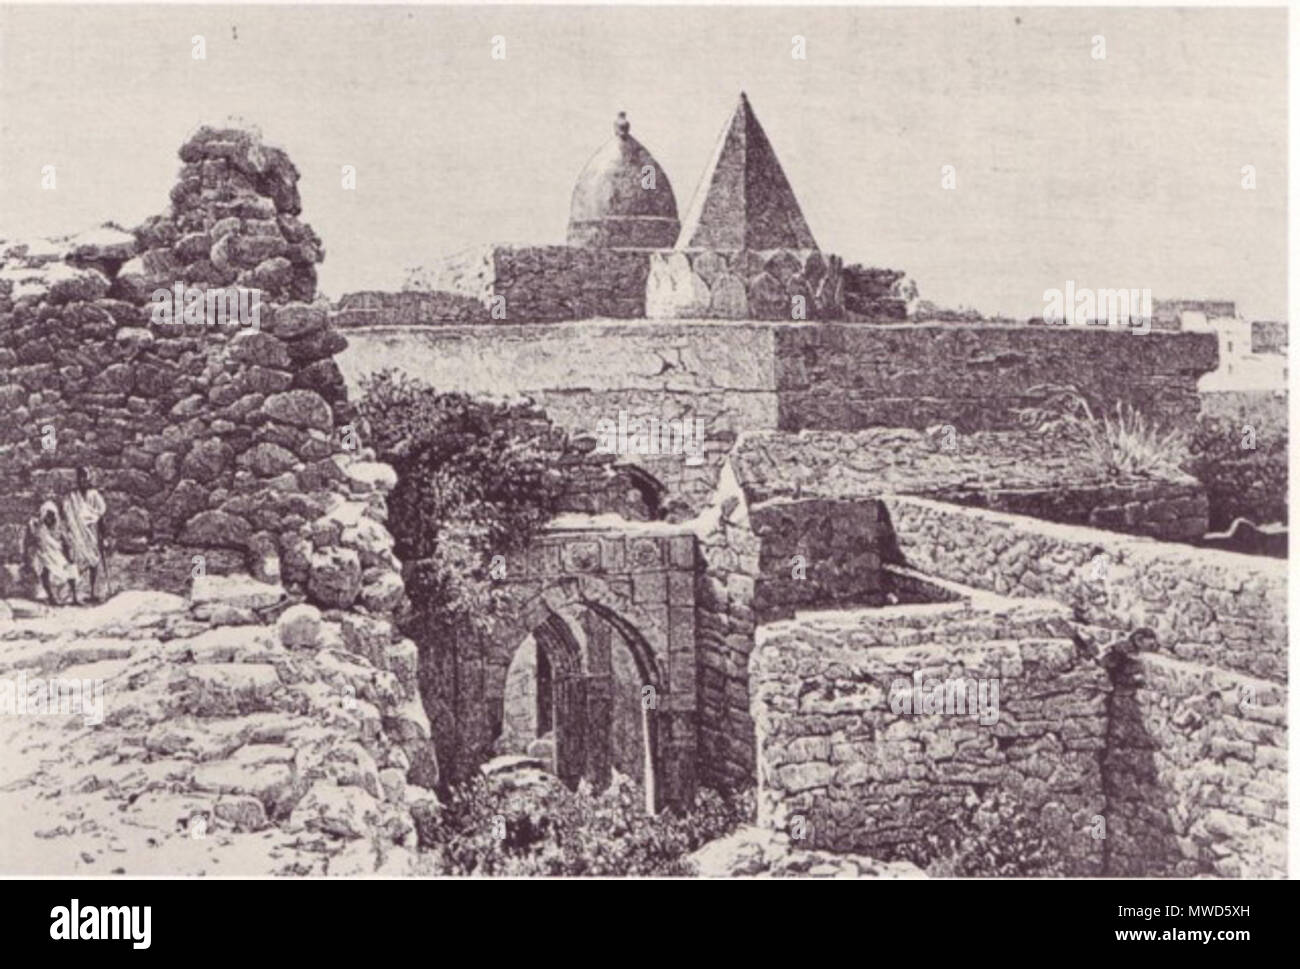 . 'The Fakhr Ad-Din Mosque' in Mogadishu in 1882. From E.Cerulli, Somalia, Scritti Vari Editi ed Inediti, Vol. 1., Fig. XV. Istituto Poligrafico dello Stato, P.V., Rome, 1957. Figure is referenced as Dal Voyage chez les Benadirs di G. Revoil. Figure courtesy Library of Congress' (from page 138 of 'Somalia in Word and Image', 1986, Ed by K.S. Loughran., J.L. Loughran., J.W. Johnson., S.S. Samatar. Published by the Foundation for Cross Cultural Understanding, Washington, D.C., and Indiana University Press). . This file is lacking author information. 201 Fakr Ud Din Mosque - Stock Image